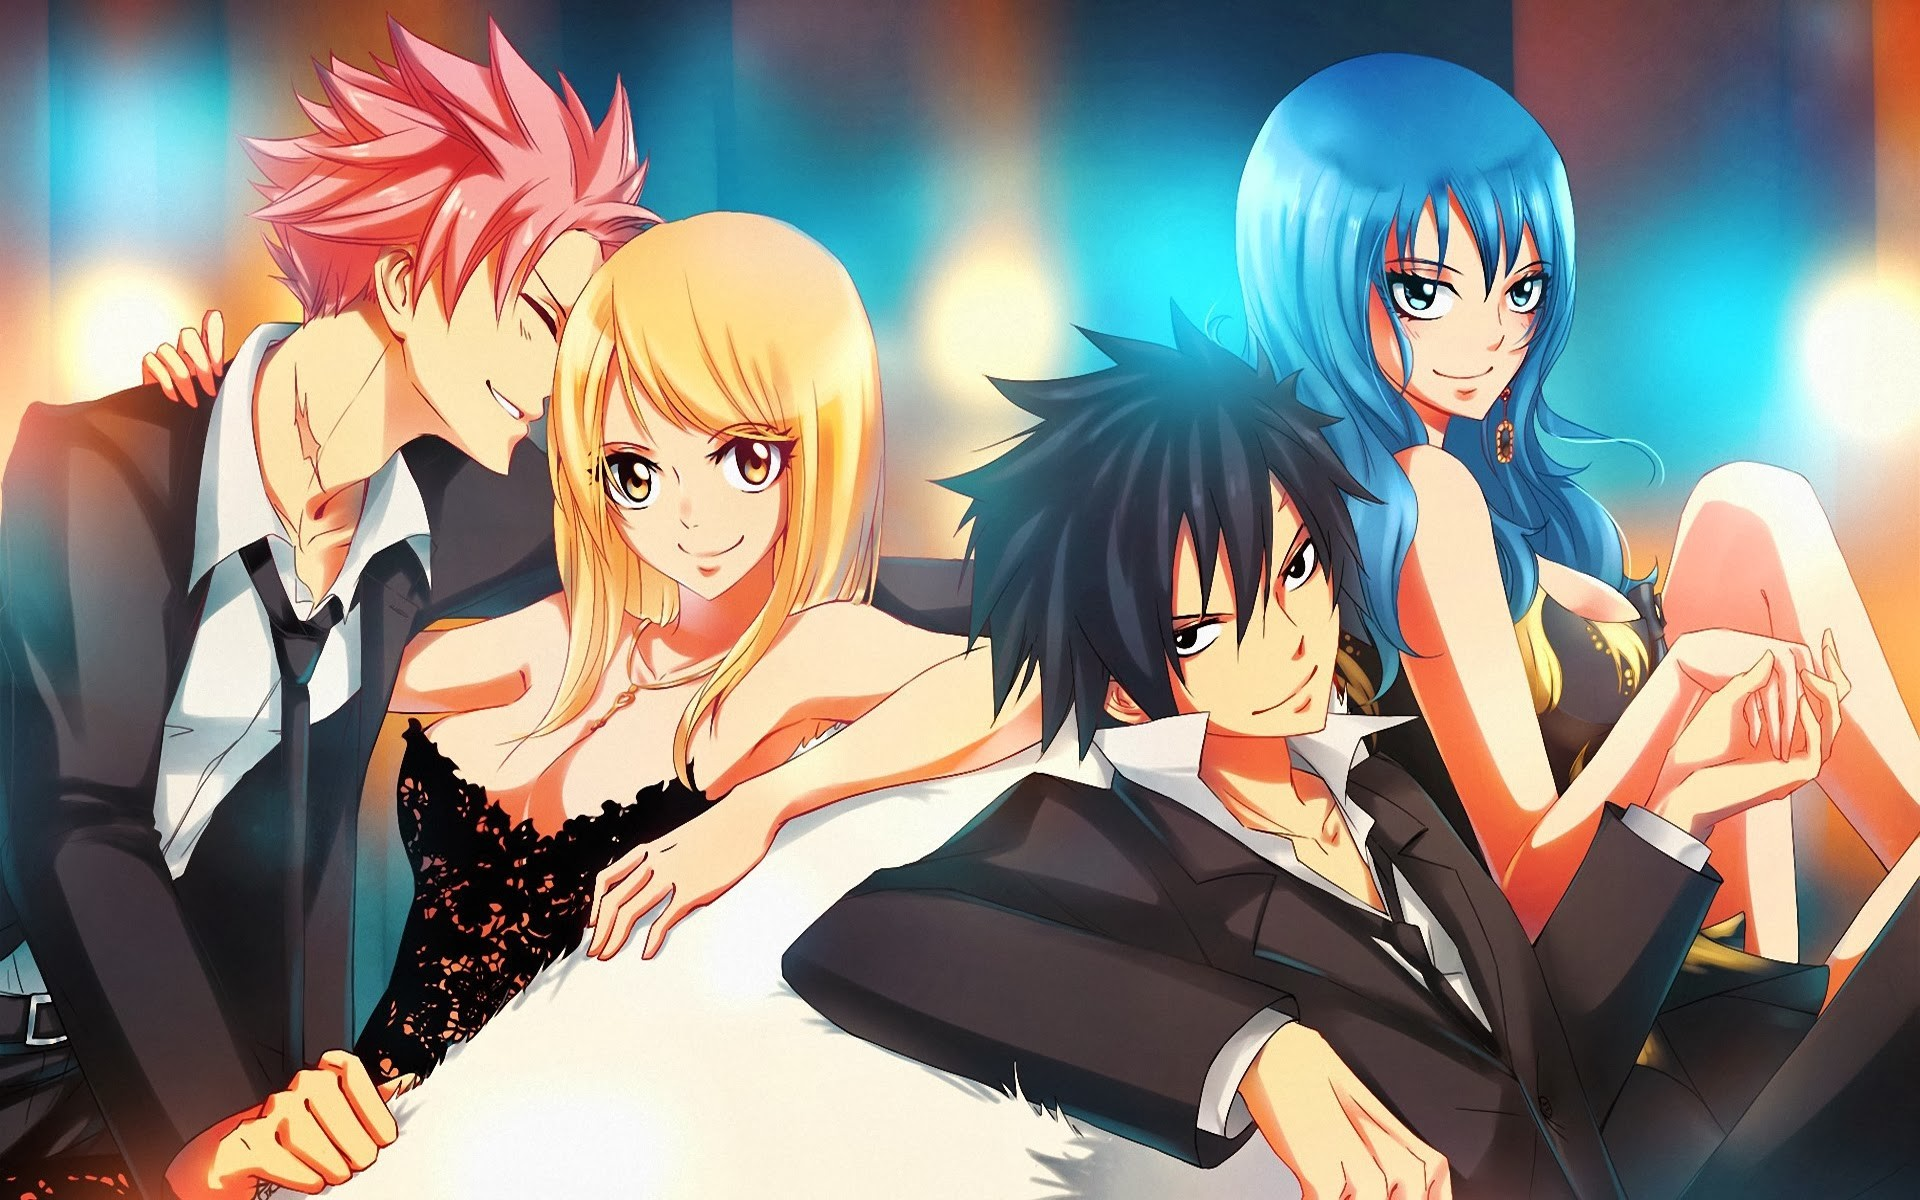 1920x1200 The Couples of Fairy Tail images ~ NaLu & Gruvia ~ HD wallpaper and  background photos